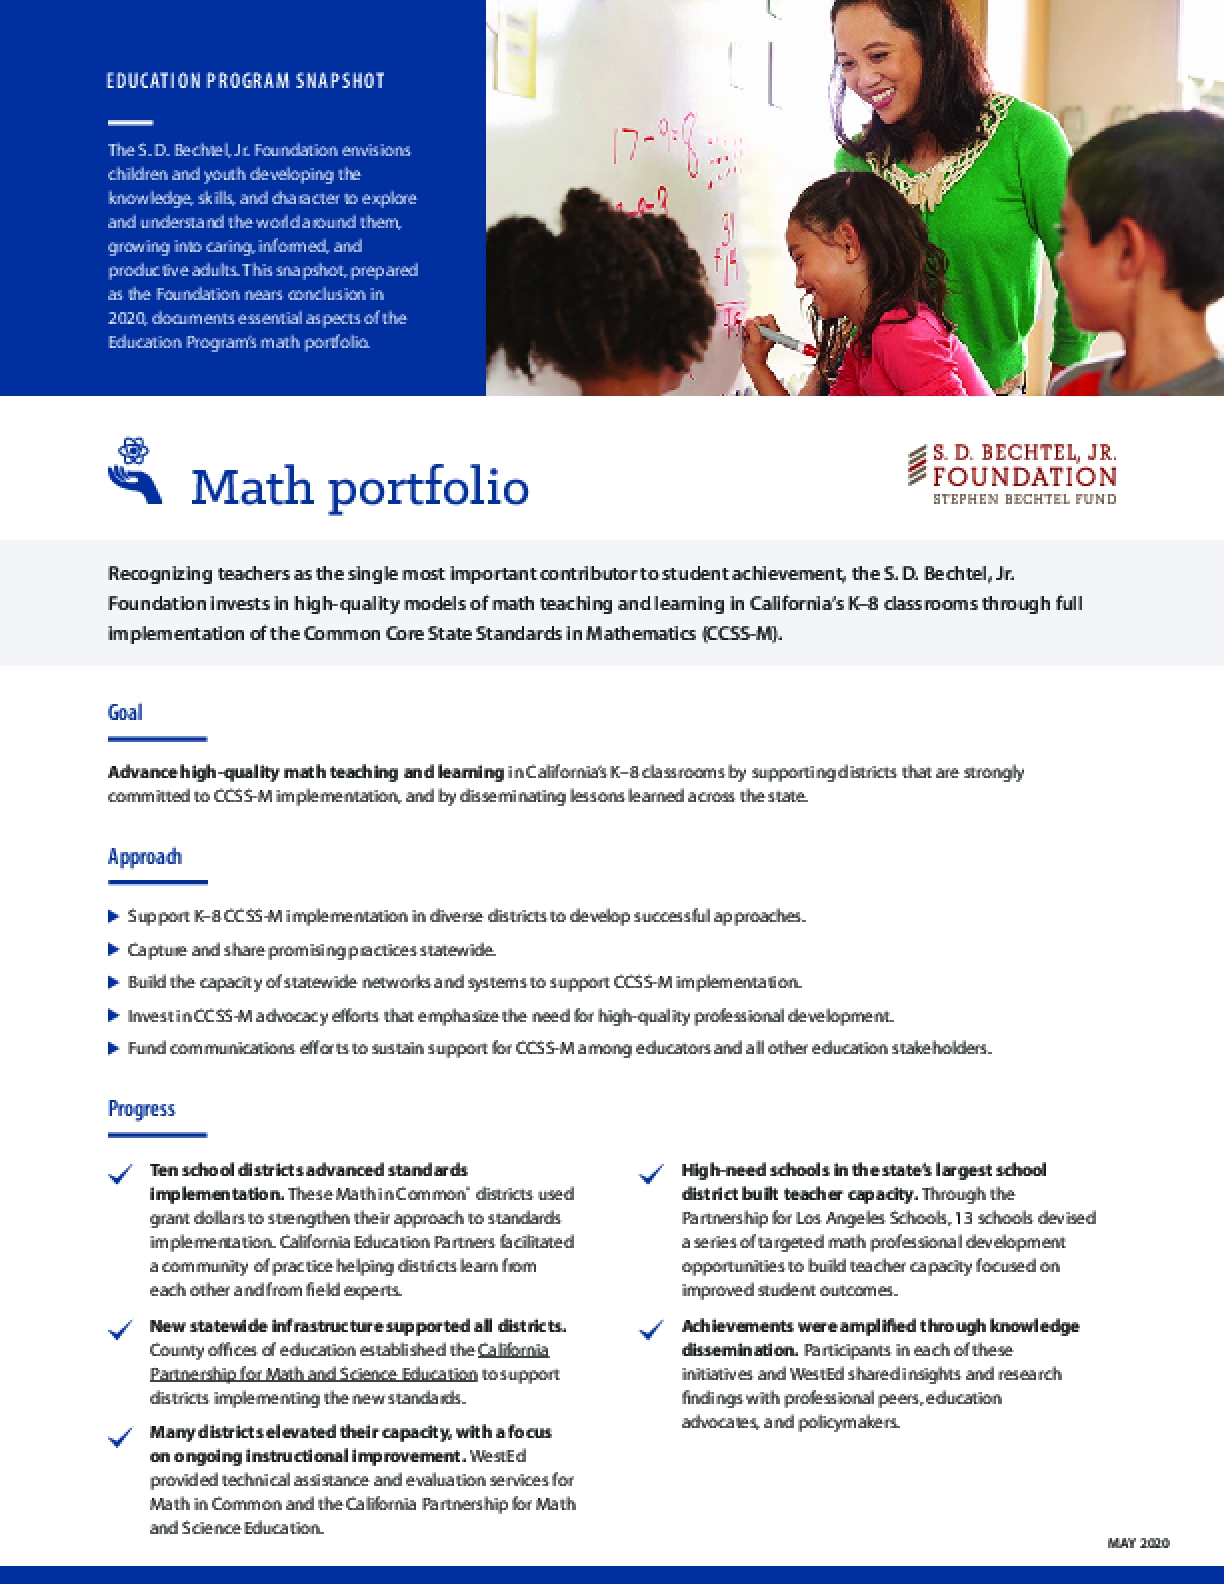 Education Program Snapshot: Math Portfolio